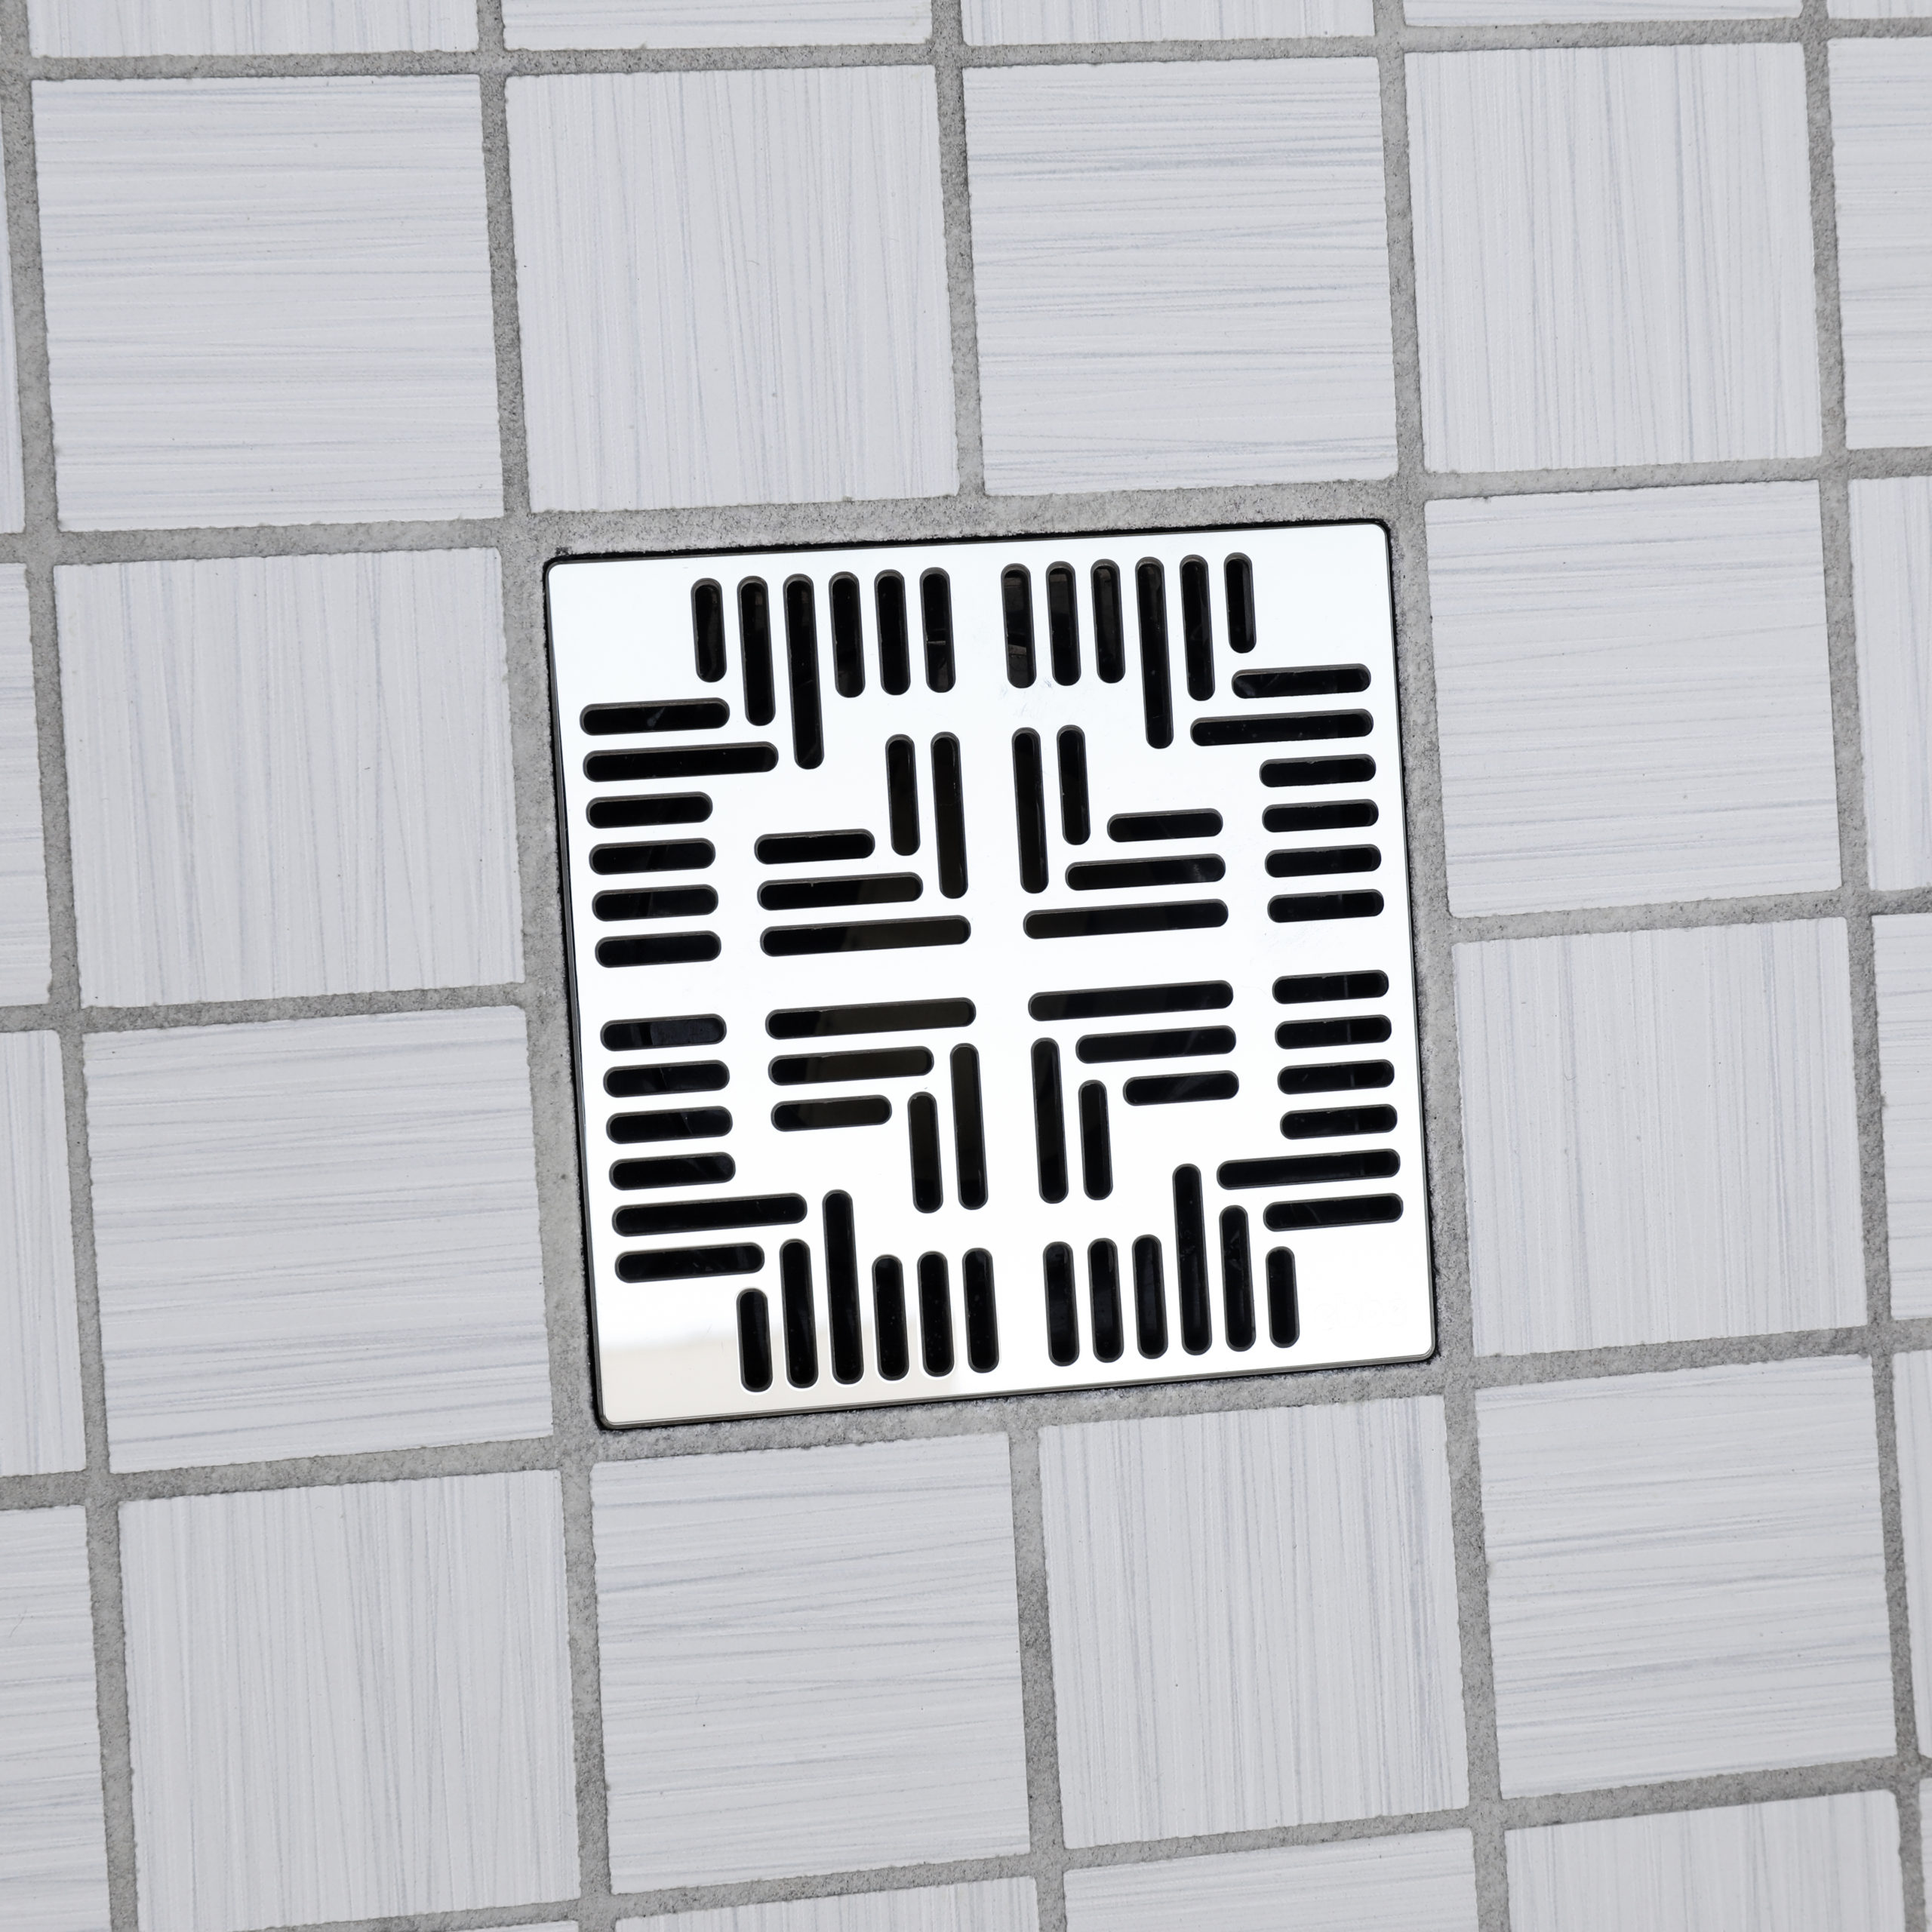 E4804-PS - Ebbe UNIQUE Drain Cover - NAVAJO - Polished Stainless Steel - Shower Drain - ad